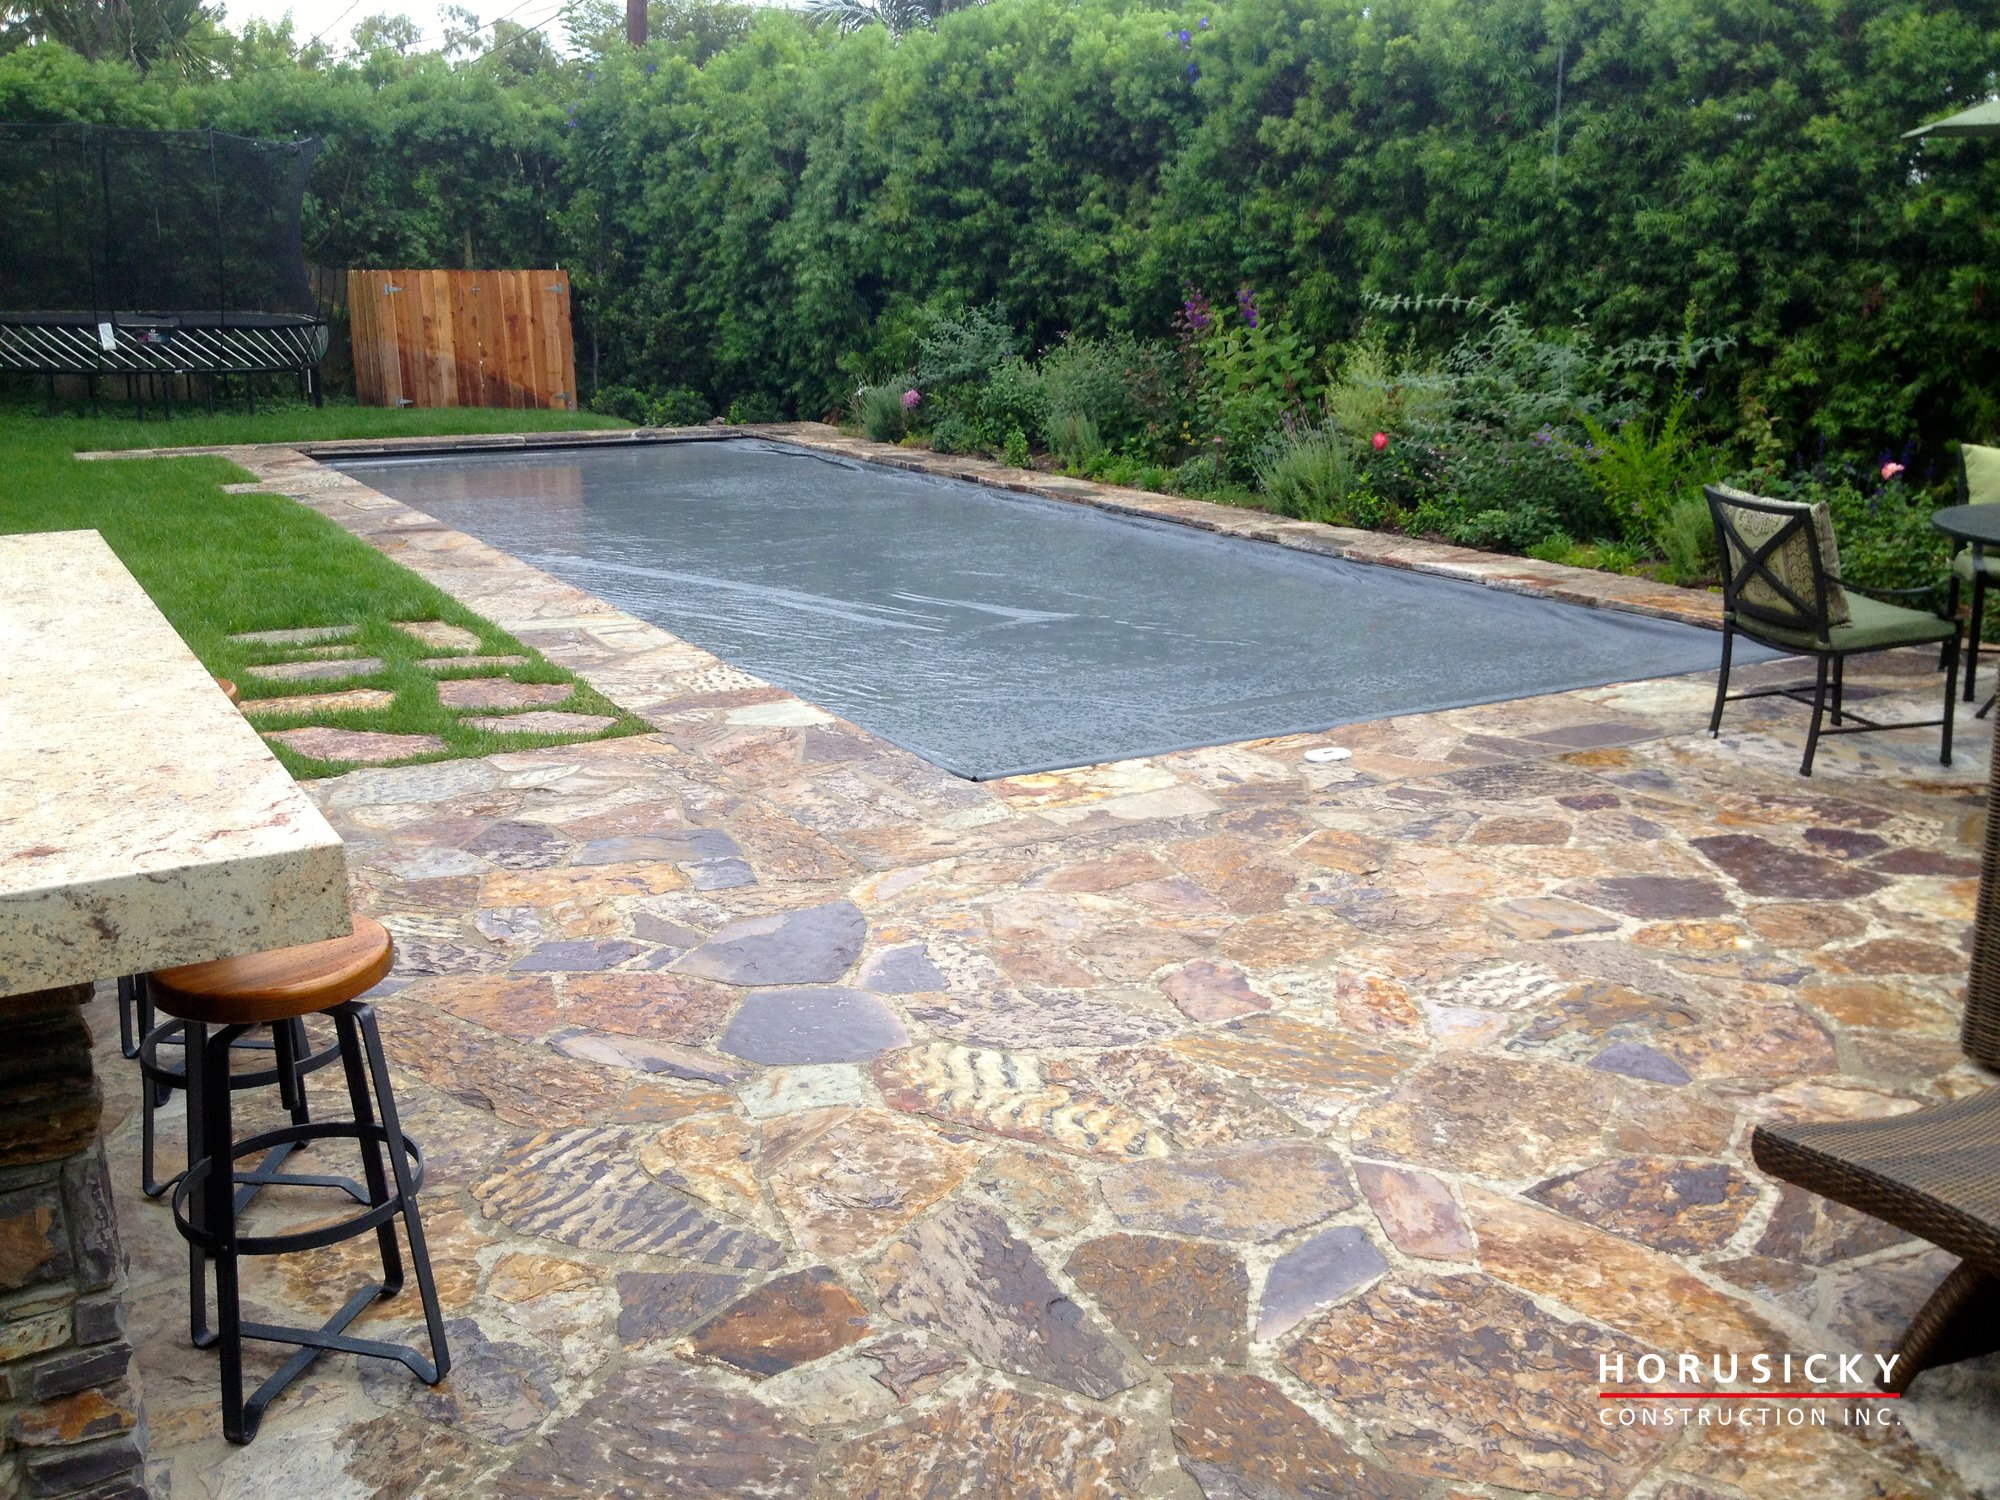 Pool Cover Construction : Pool covers horusicky construction